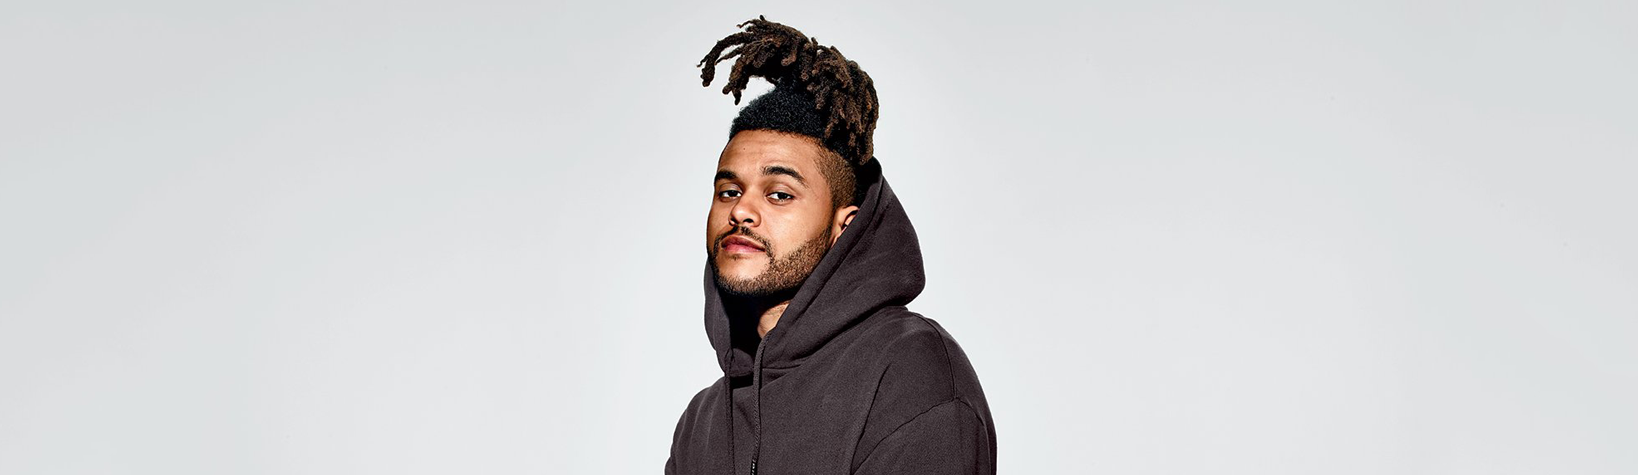 The Weeknd Png (103+ images in Collection) Page 1.